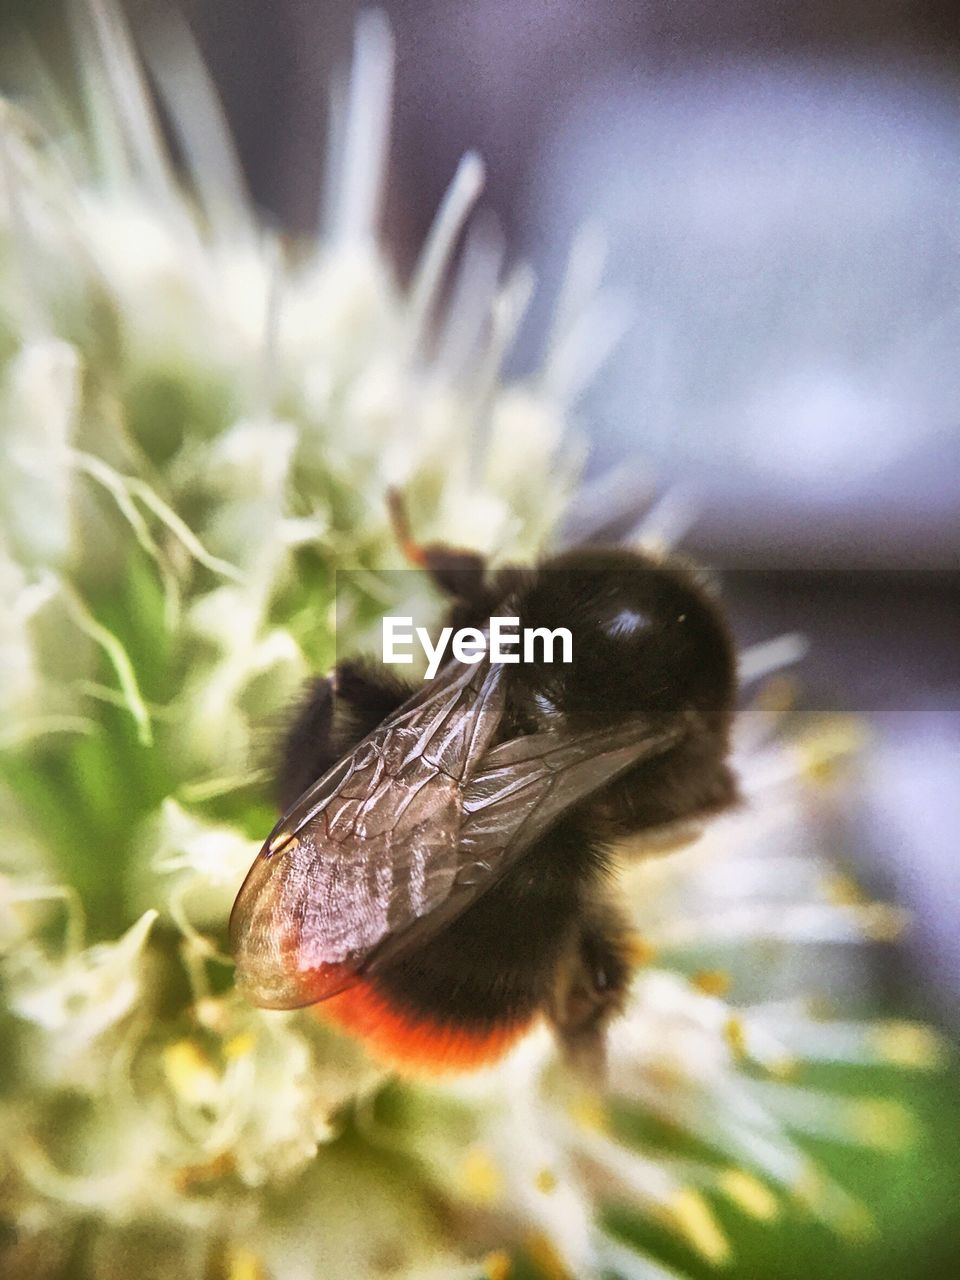 insect, animal themes, one animal, animals in the wild, wildlife, flower, nature, no people, animal wildlife, focus on foreground, pollination, plant, growth, close-up, day, outdoors, bee, beauty in nature, fragility, freshness, flower head